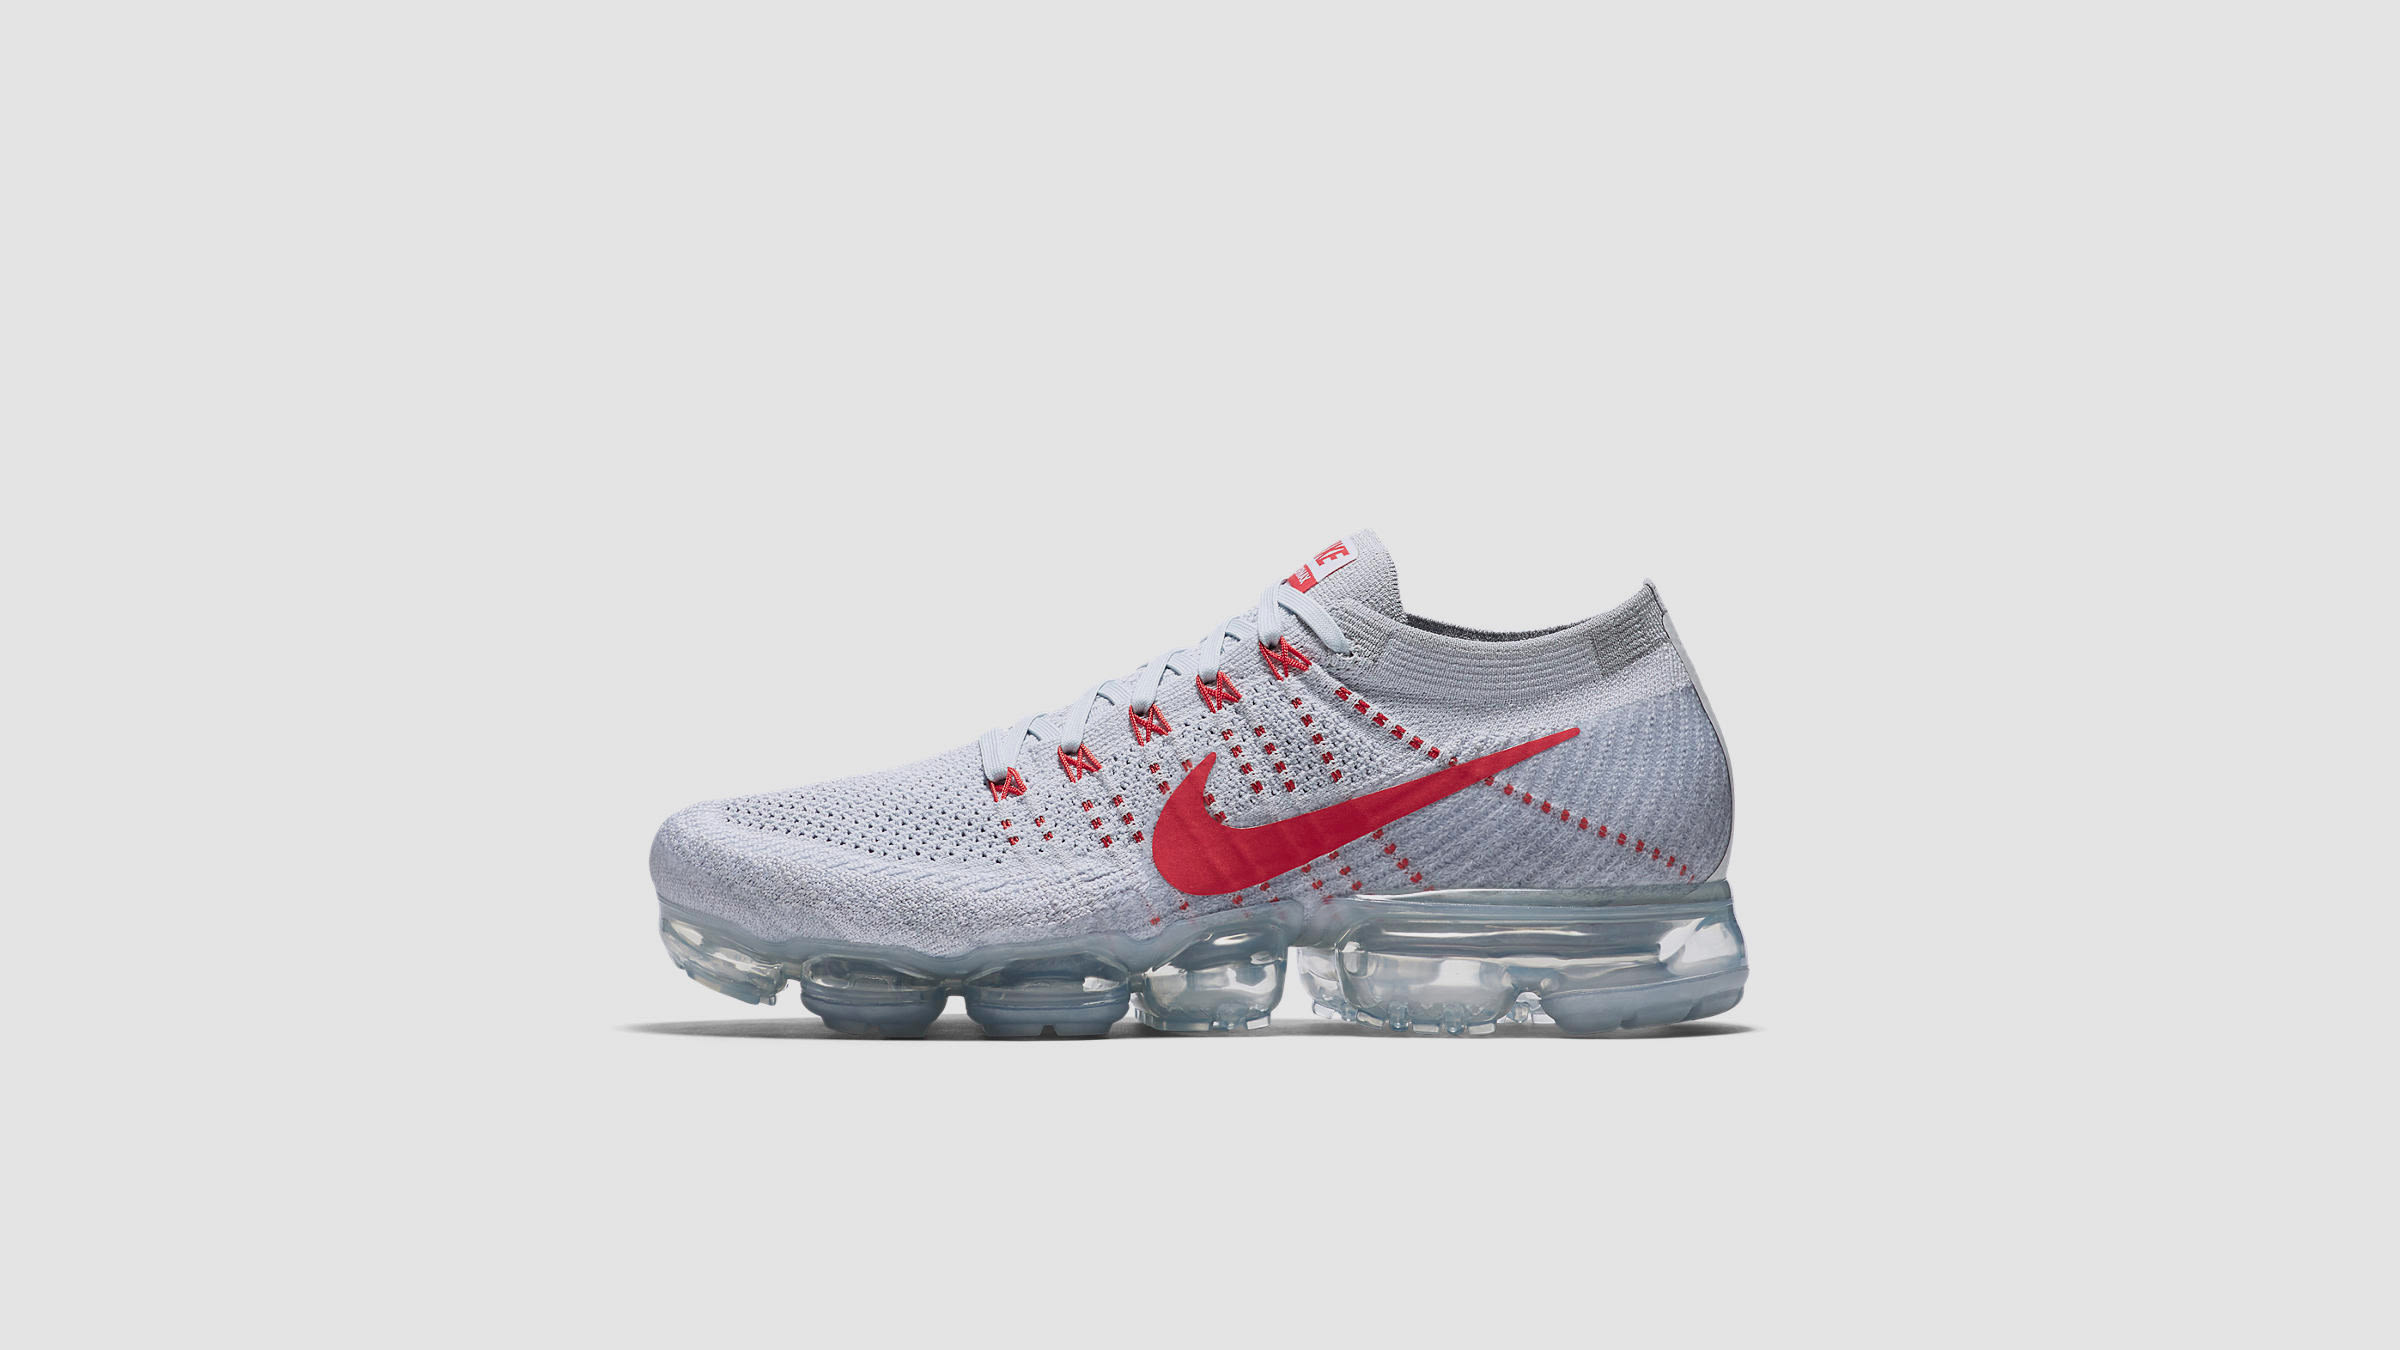 new york 142f8 935fe Nike Air Vapormax Flyknit Pure Platinum   University Red   END.